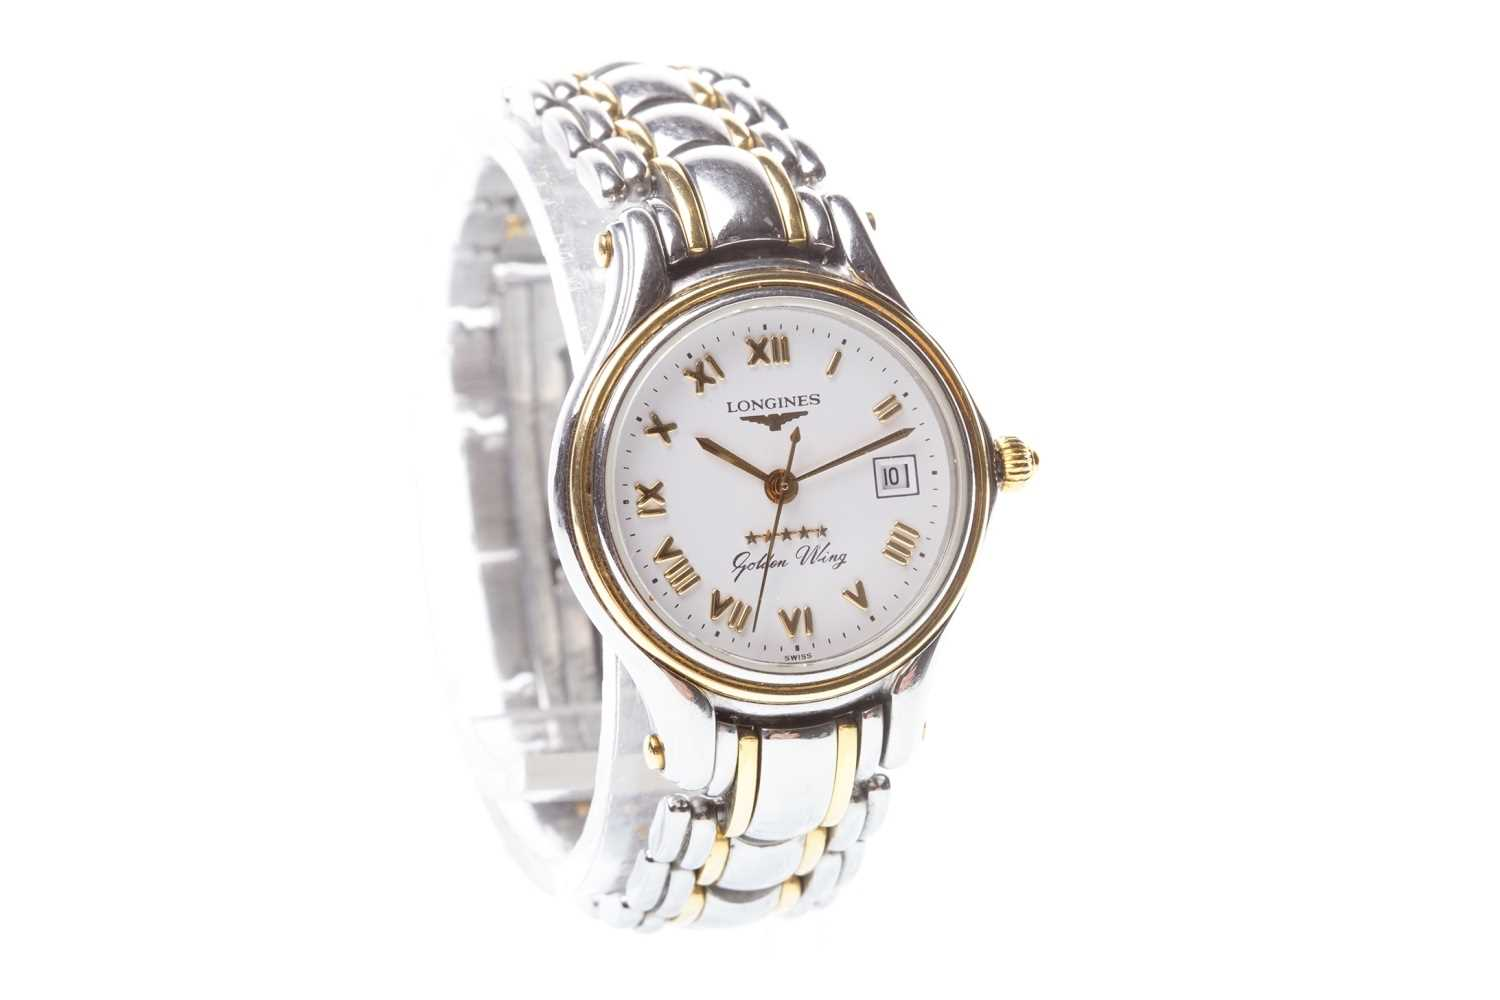 Lot 771-A LADY'S LONGINES WRIST WATCH